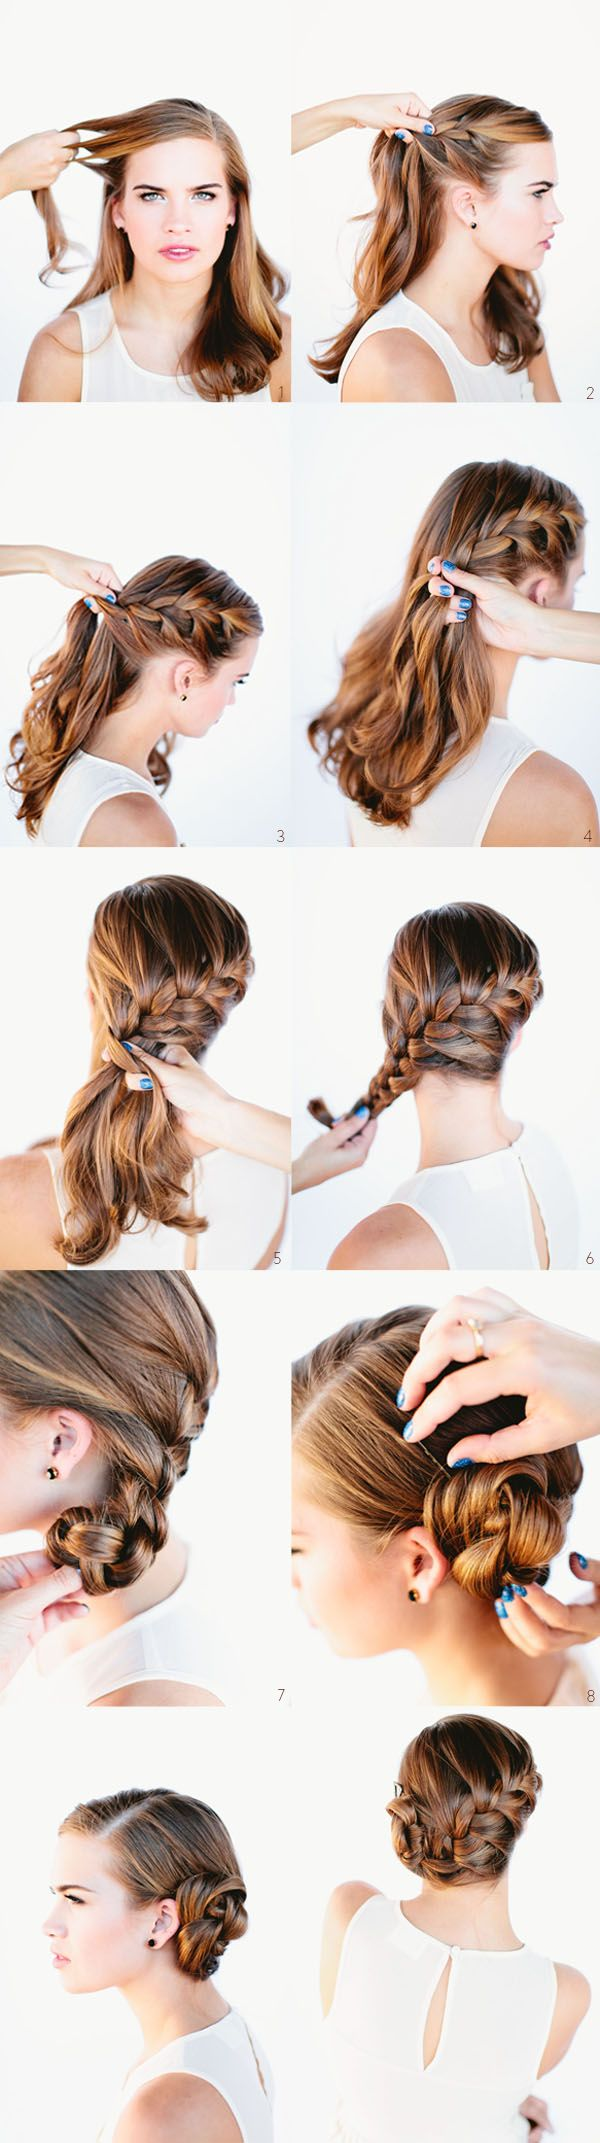 DIY French Braid Bun-Simple But Powerful Braided Hair Tutorials